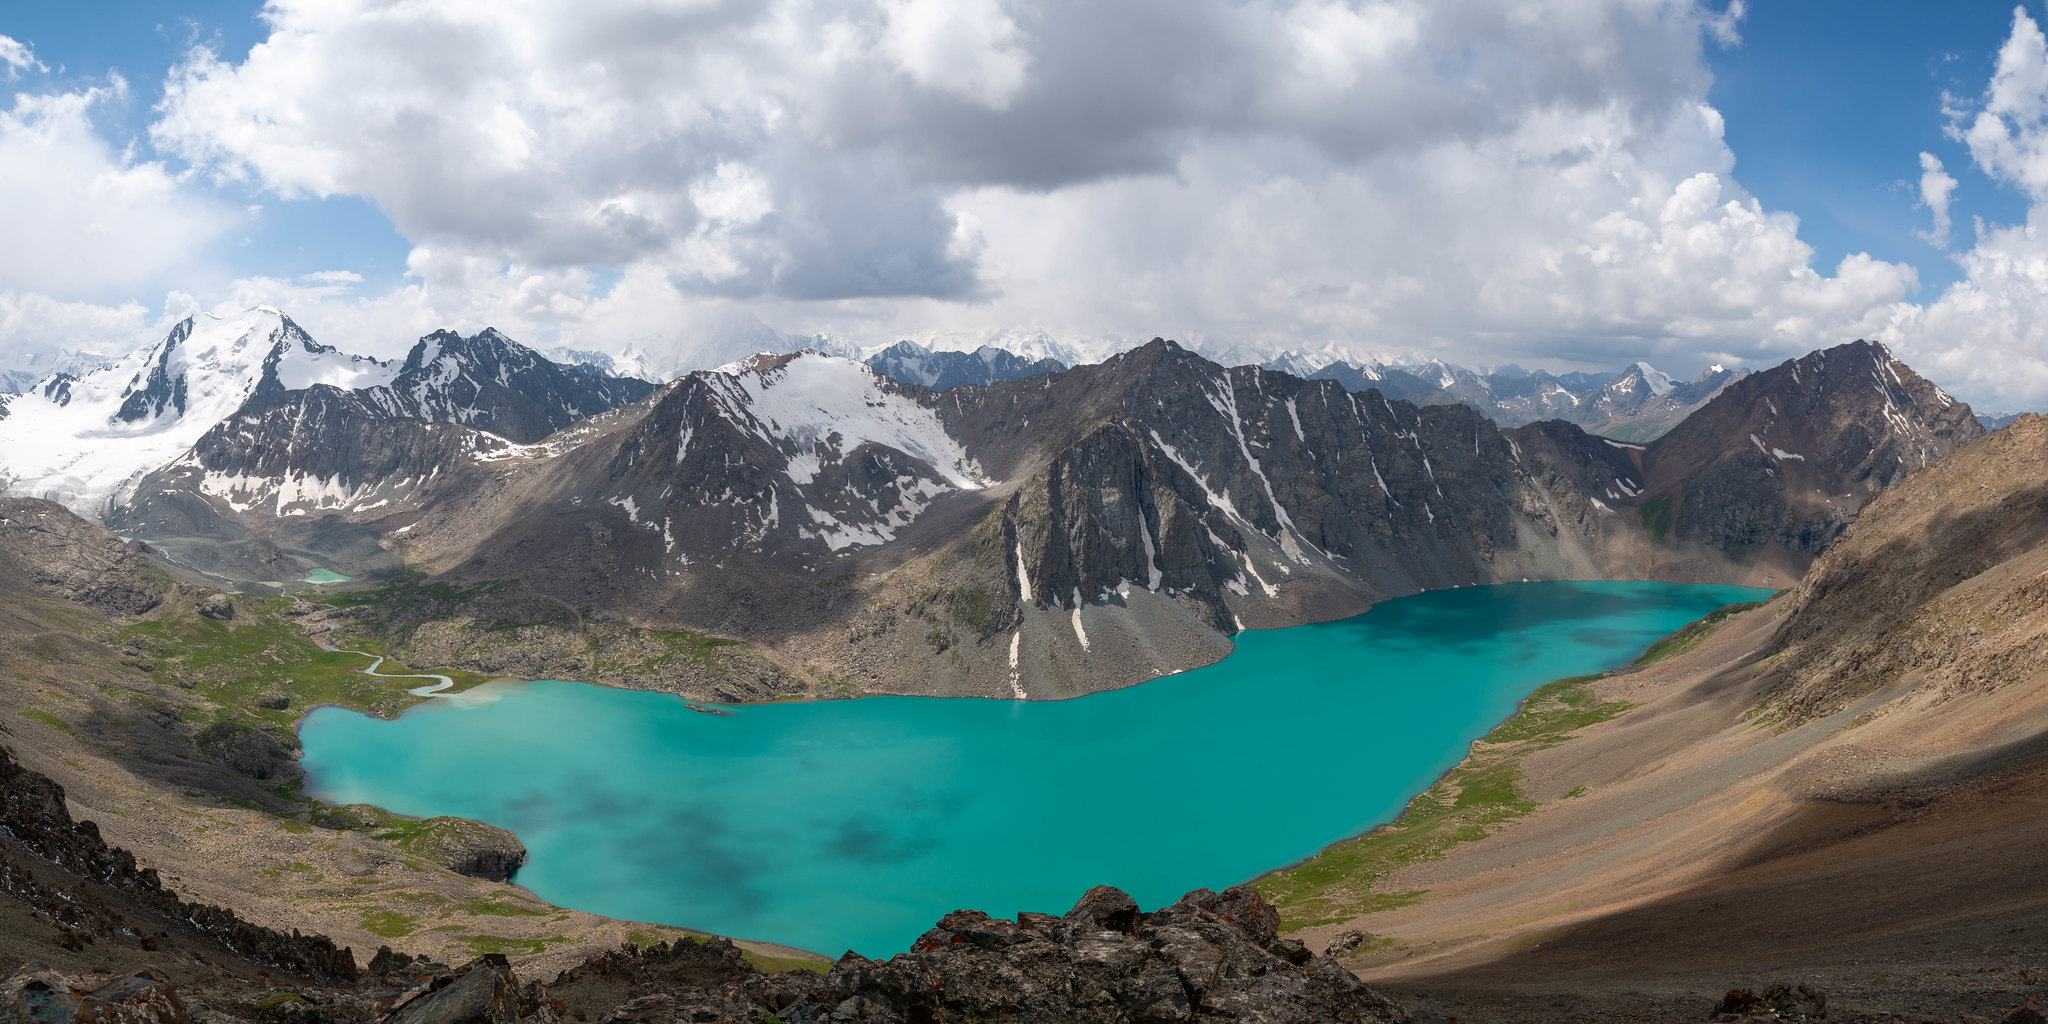 Travel: Kyrgyzstan at it's finest